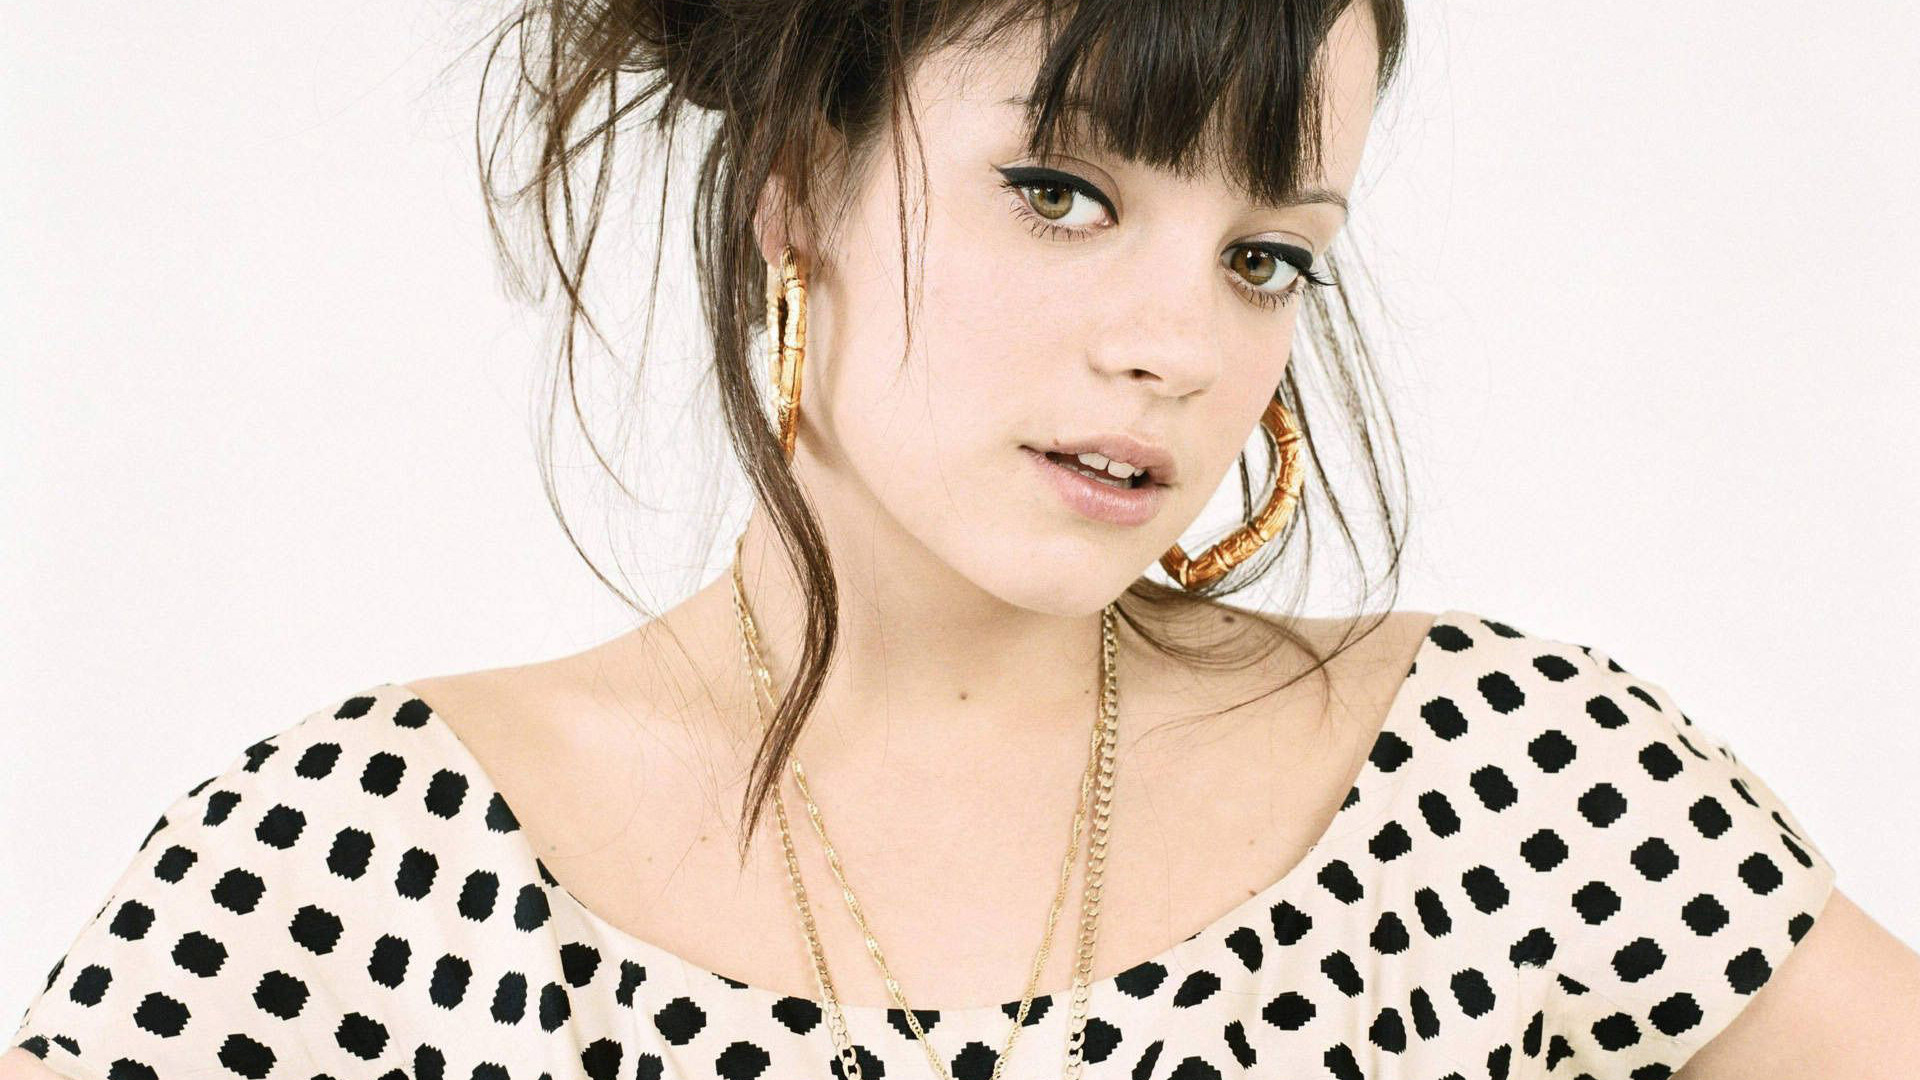 lily allen background 32938